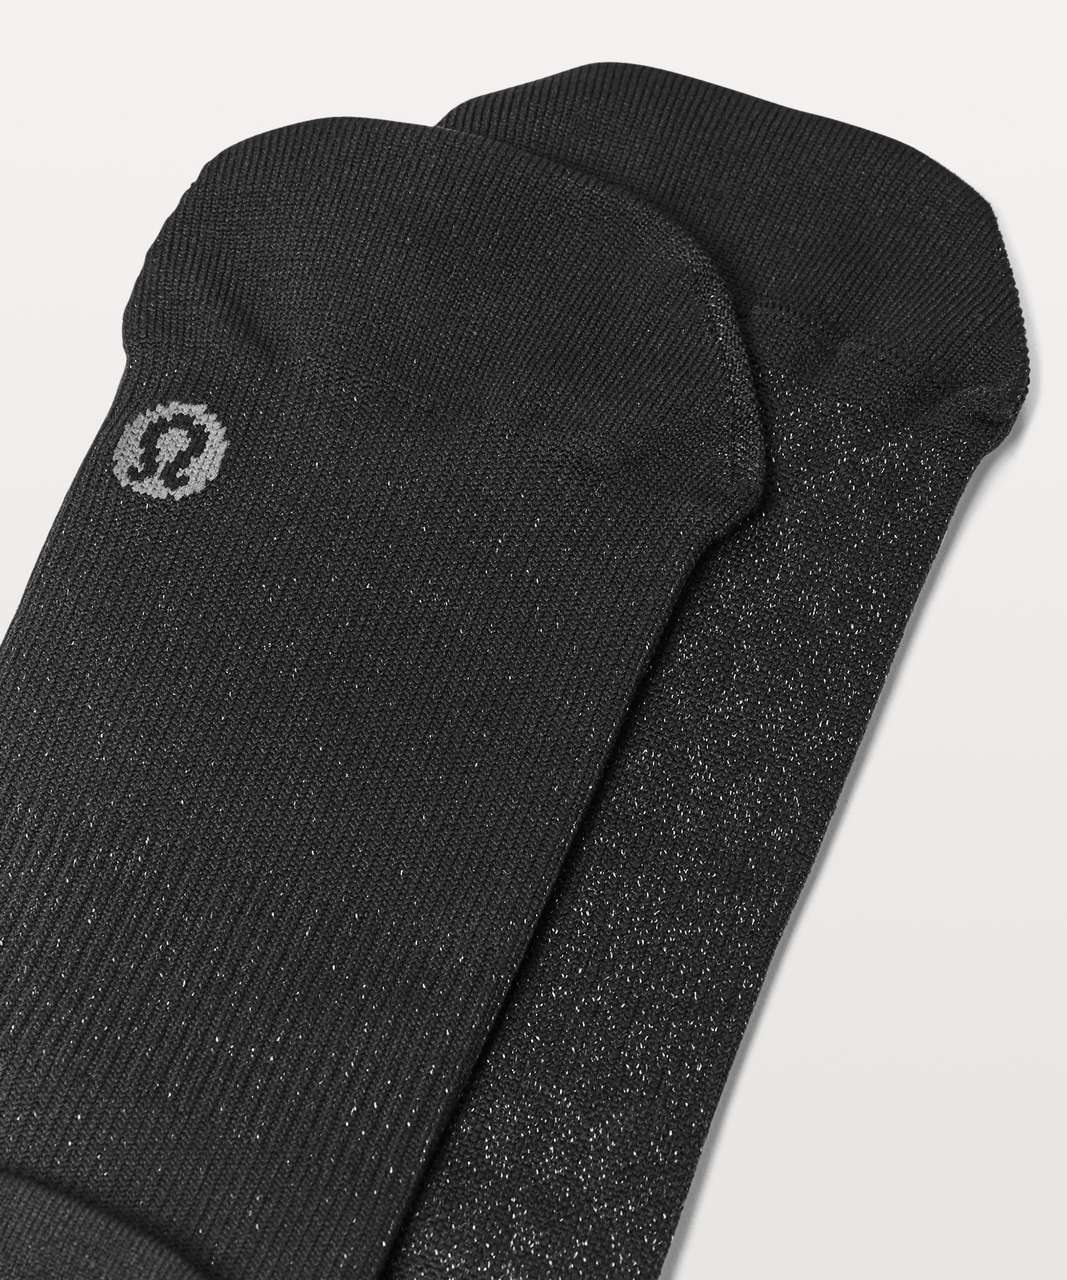 Lululemon Light Speed Sock *Silver - Black